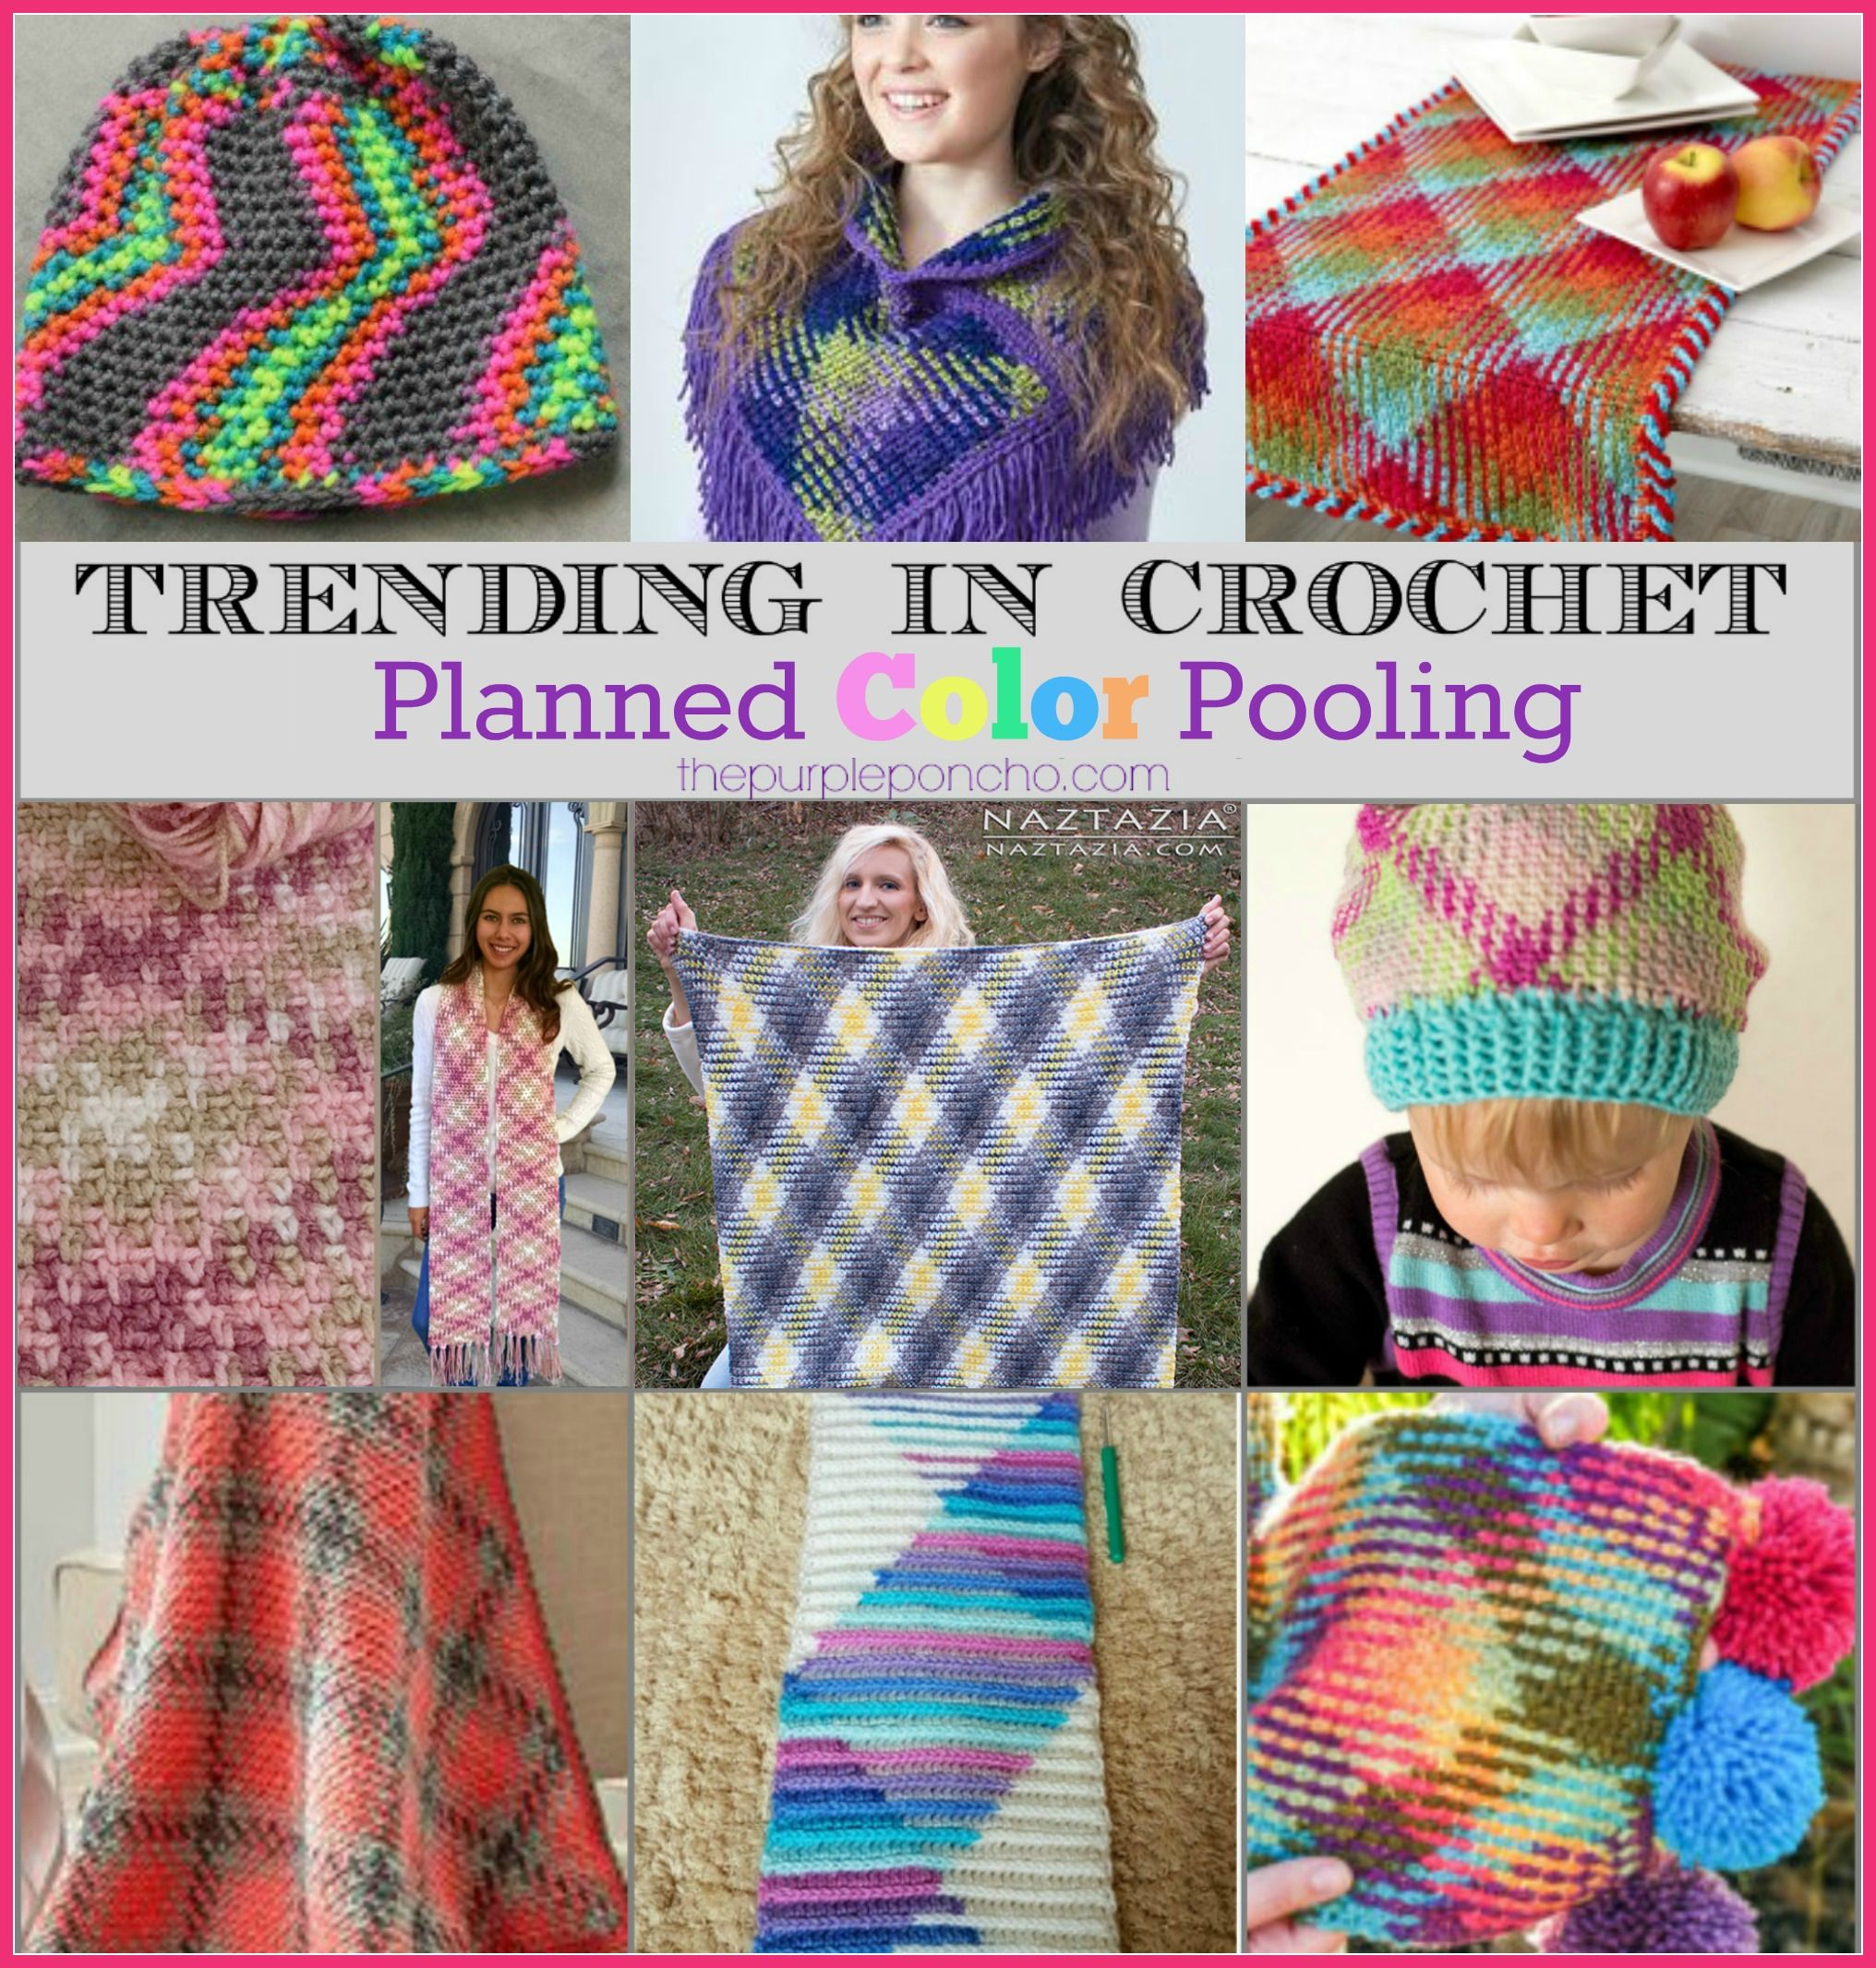 Trending In Crochet – Planned Color Pooling! on The Purple Poncho ...